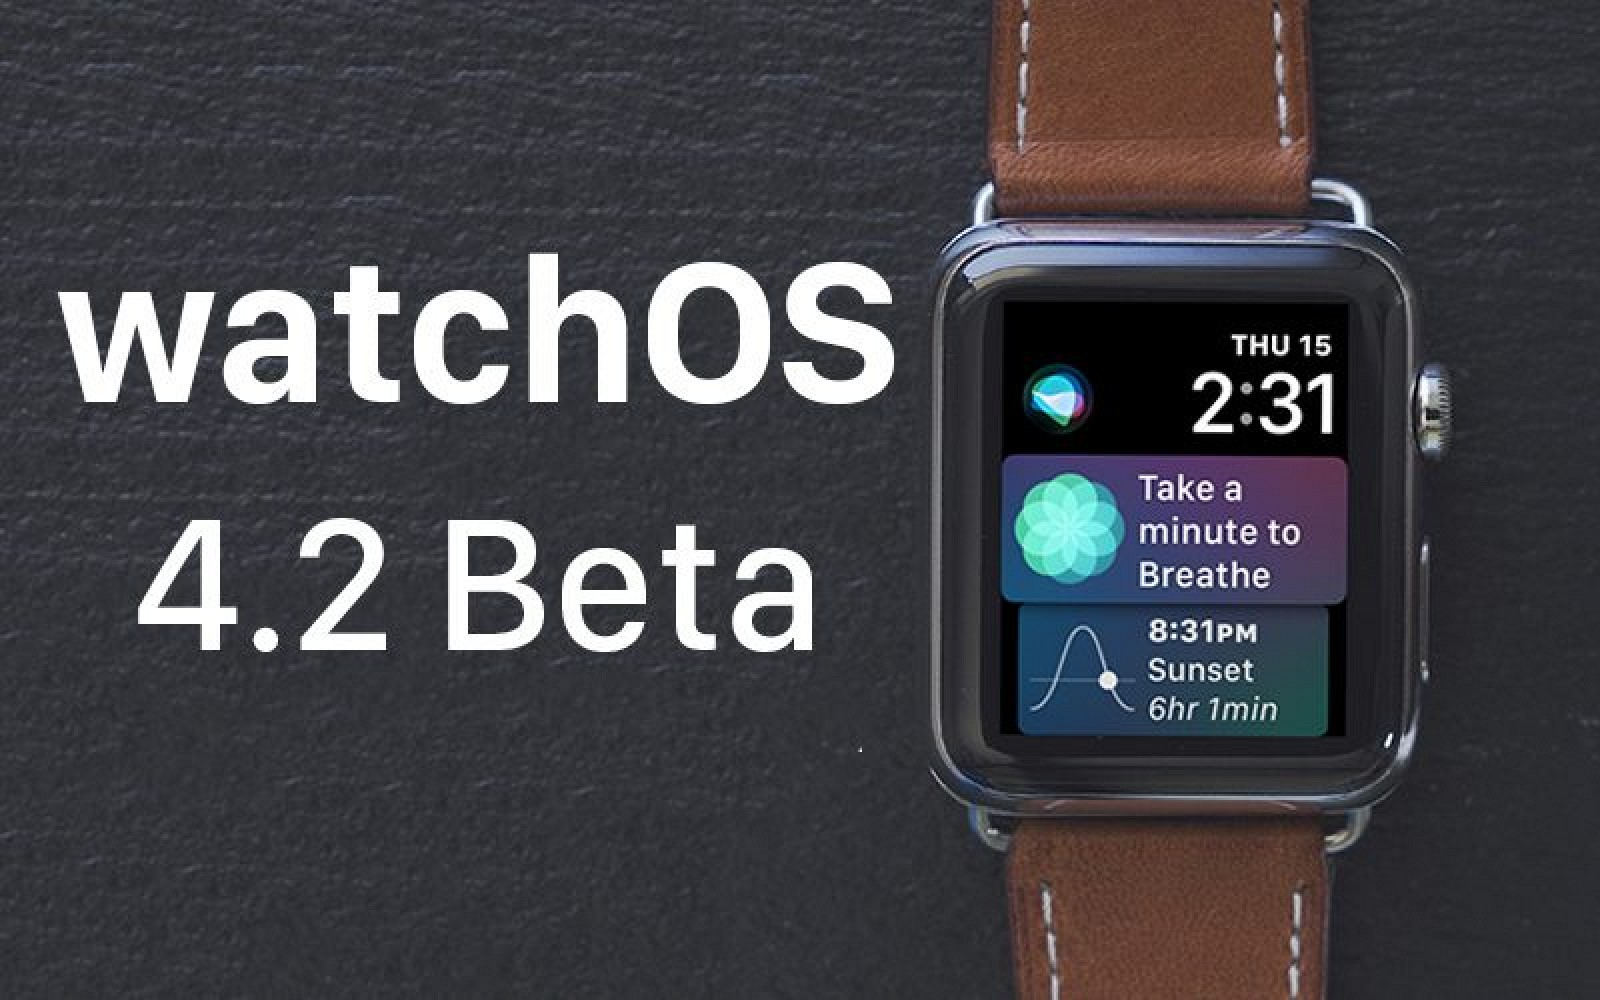 Apple Seeds Fourth Beta of watchOS 4.2 to Developers